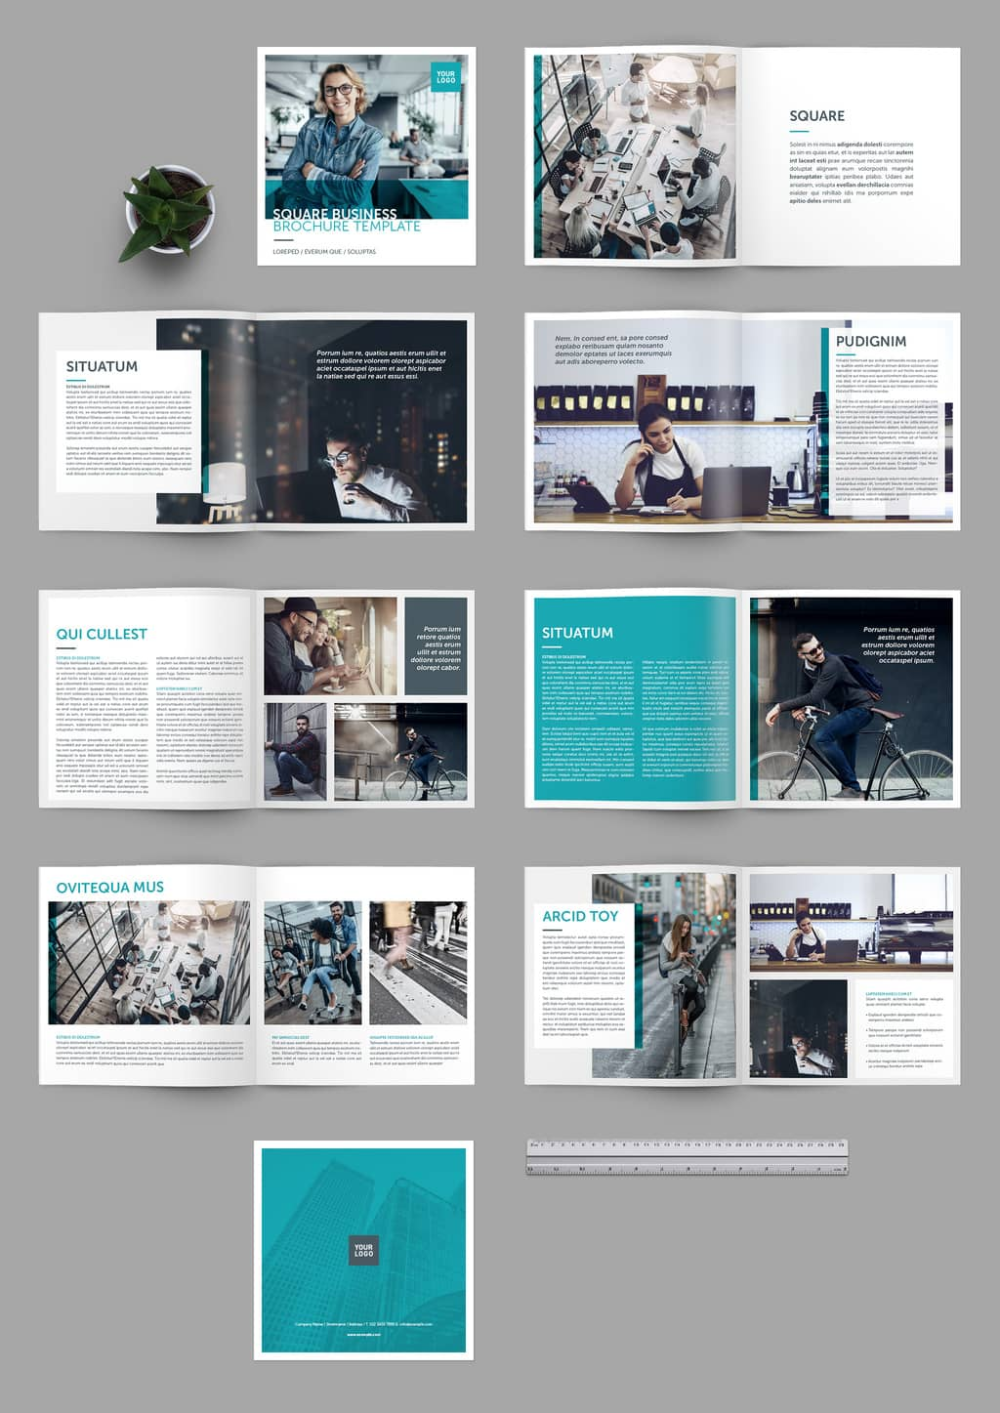 75 Fresh Indesign Templates And Where To Find More Brochure Design Layout Brochure Layout Indesign Layout